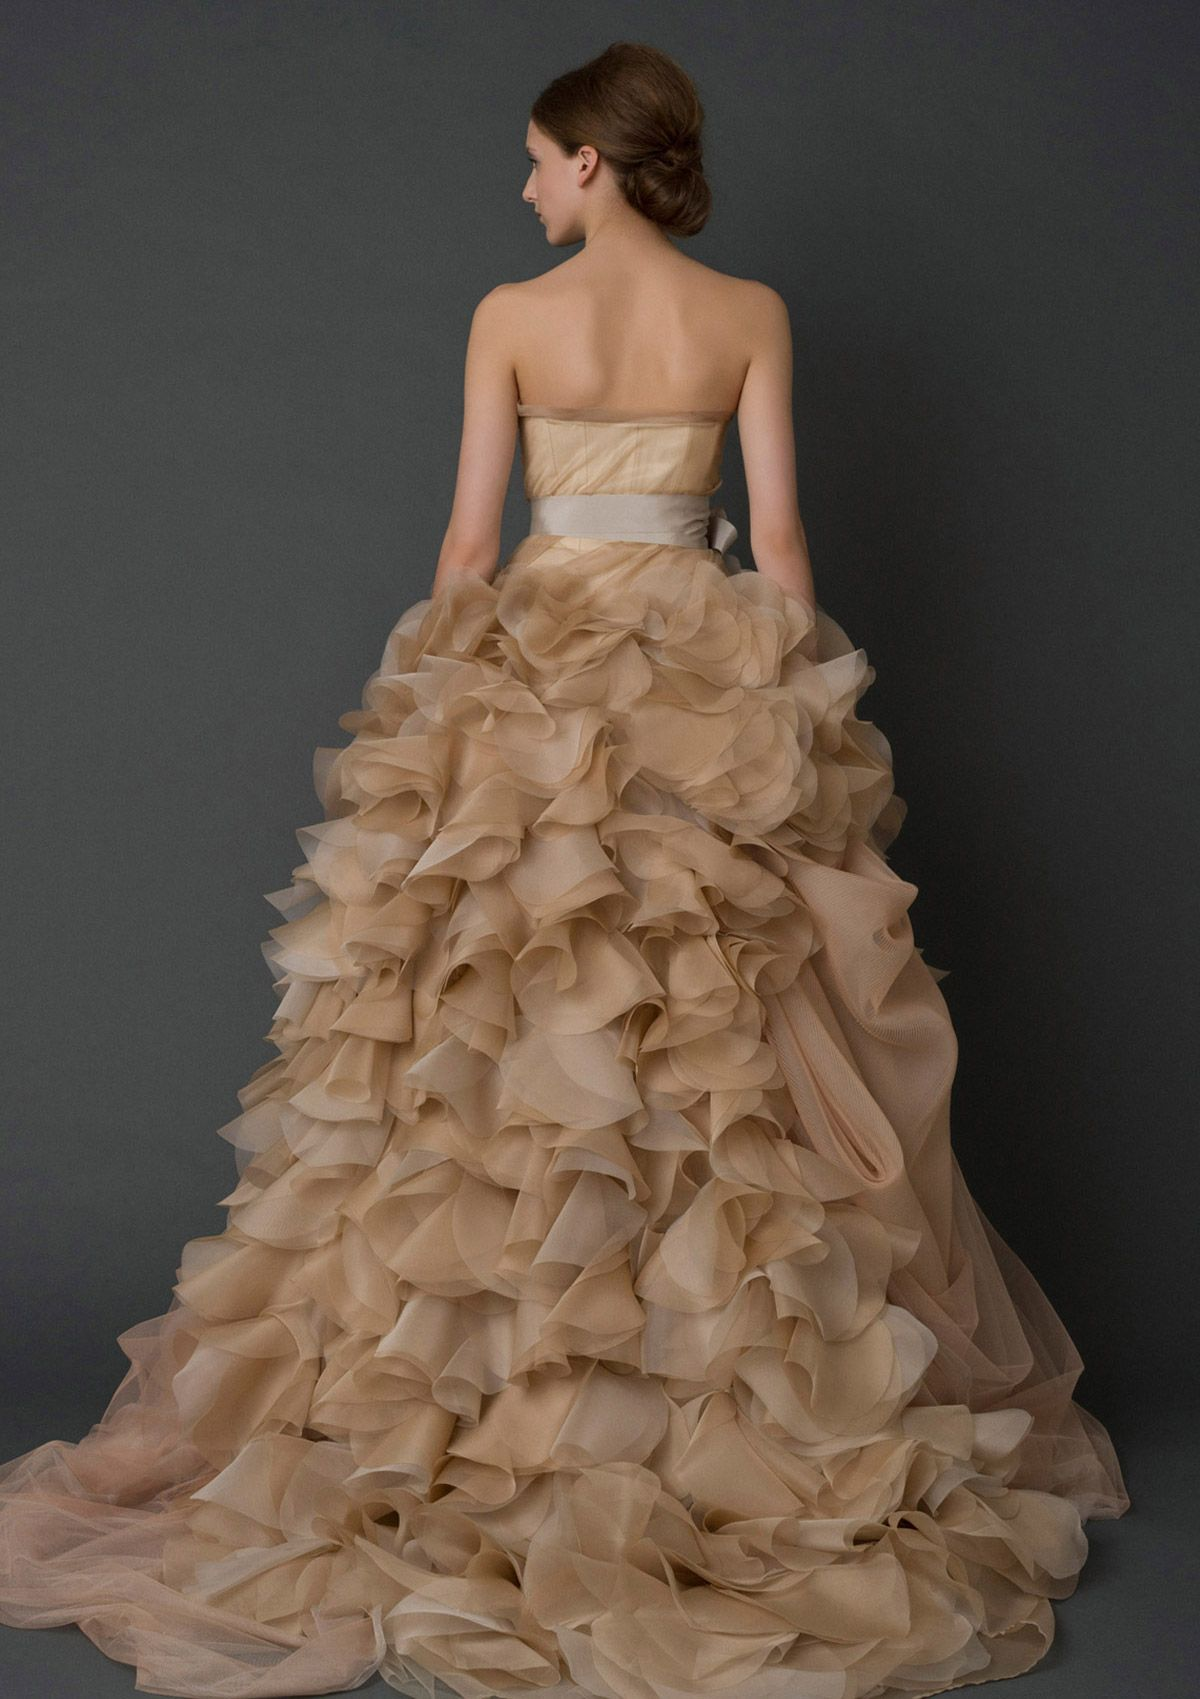 Vera wang pink wedding dress  Wedding Dresses Bridal Gowns by Vera Wang ud the back of the dress